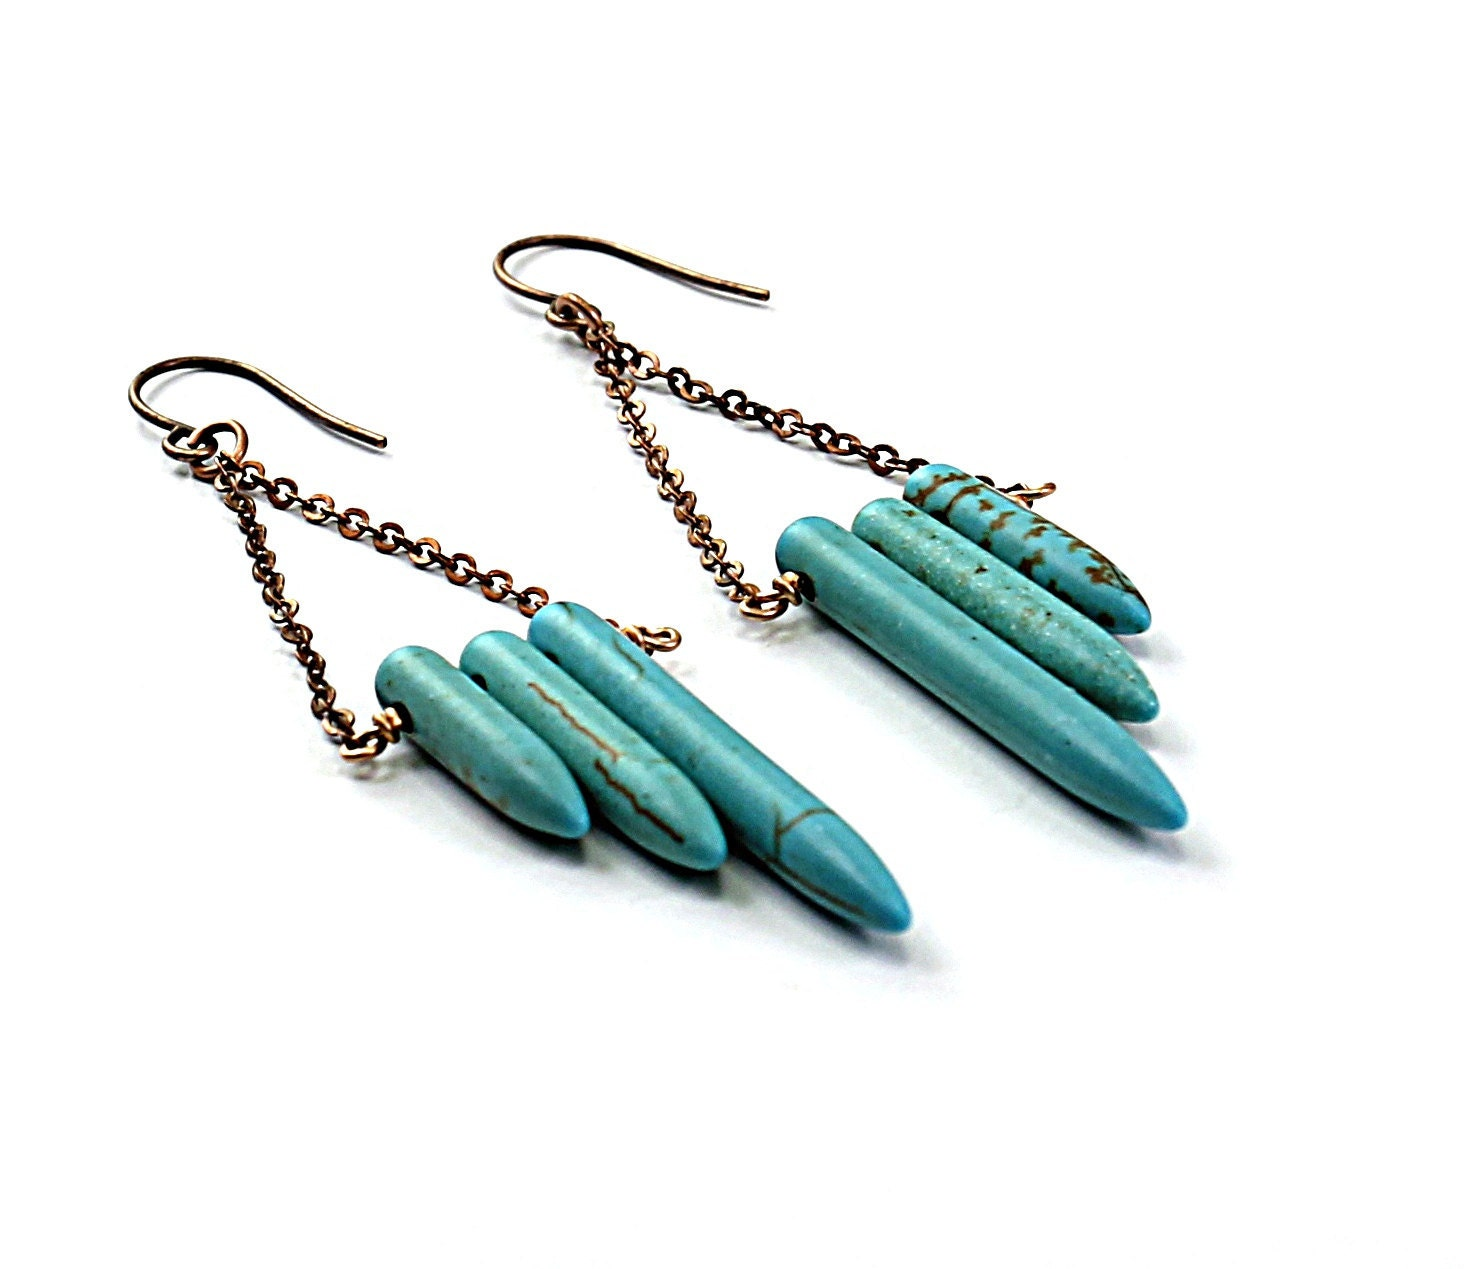 Turquoise earrings: blue earrings, inspired by native american earrings brass chain long earrings ethnic jewelry - NatureLook